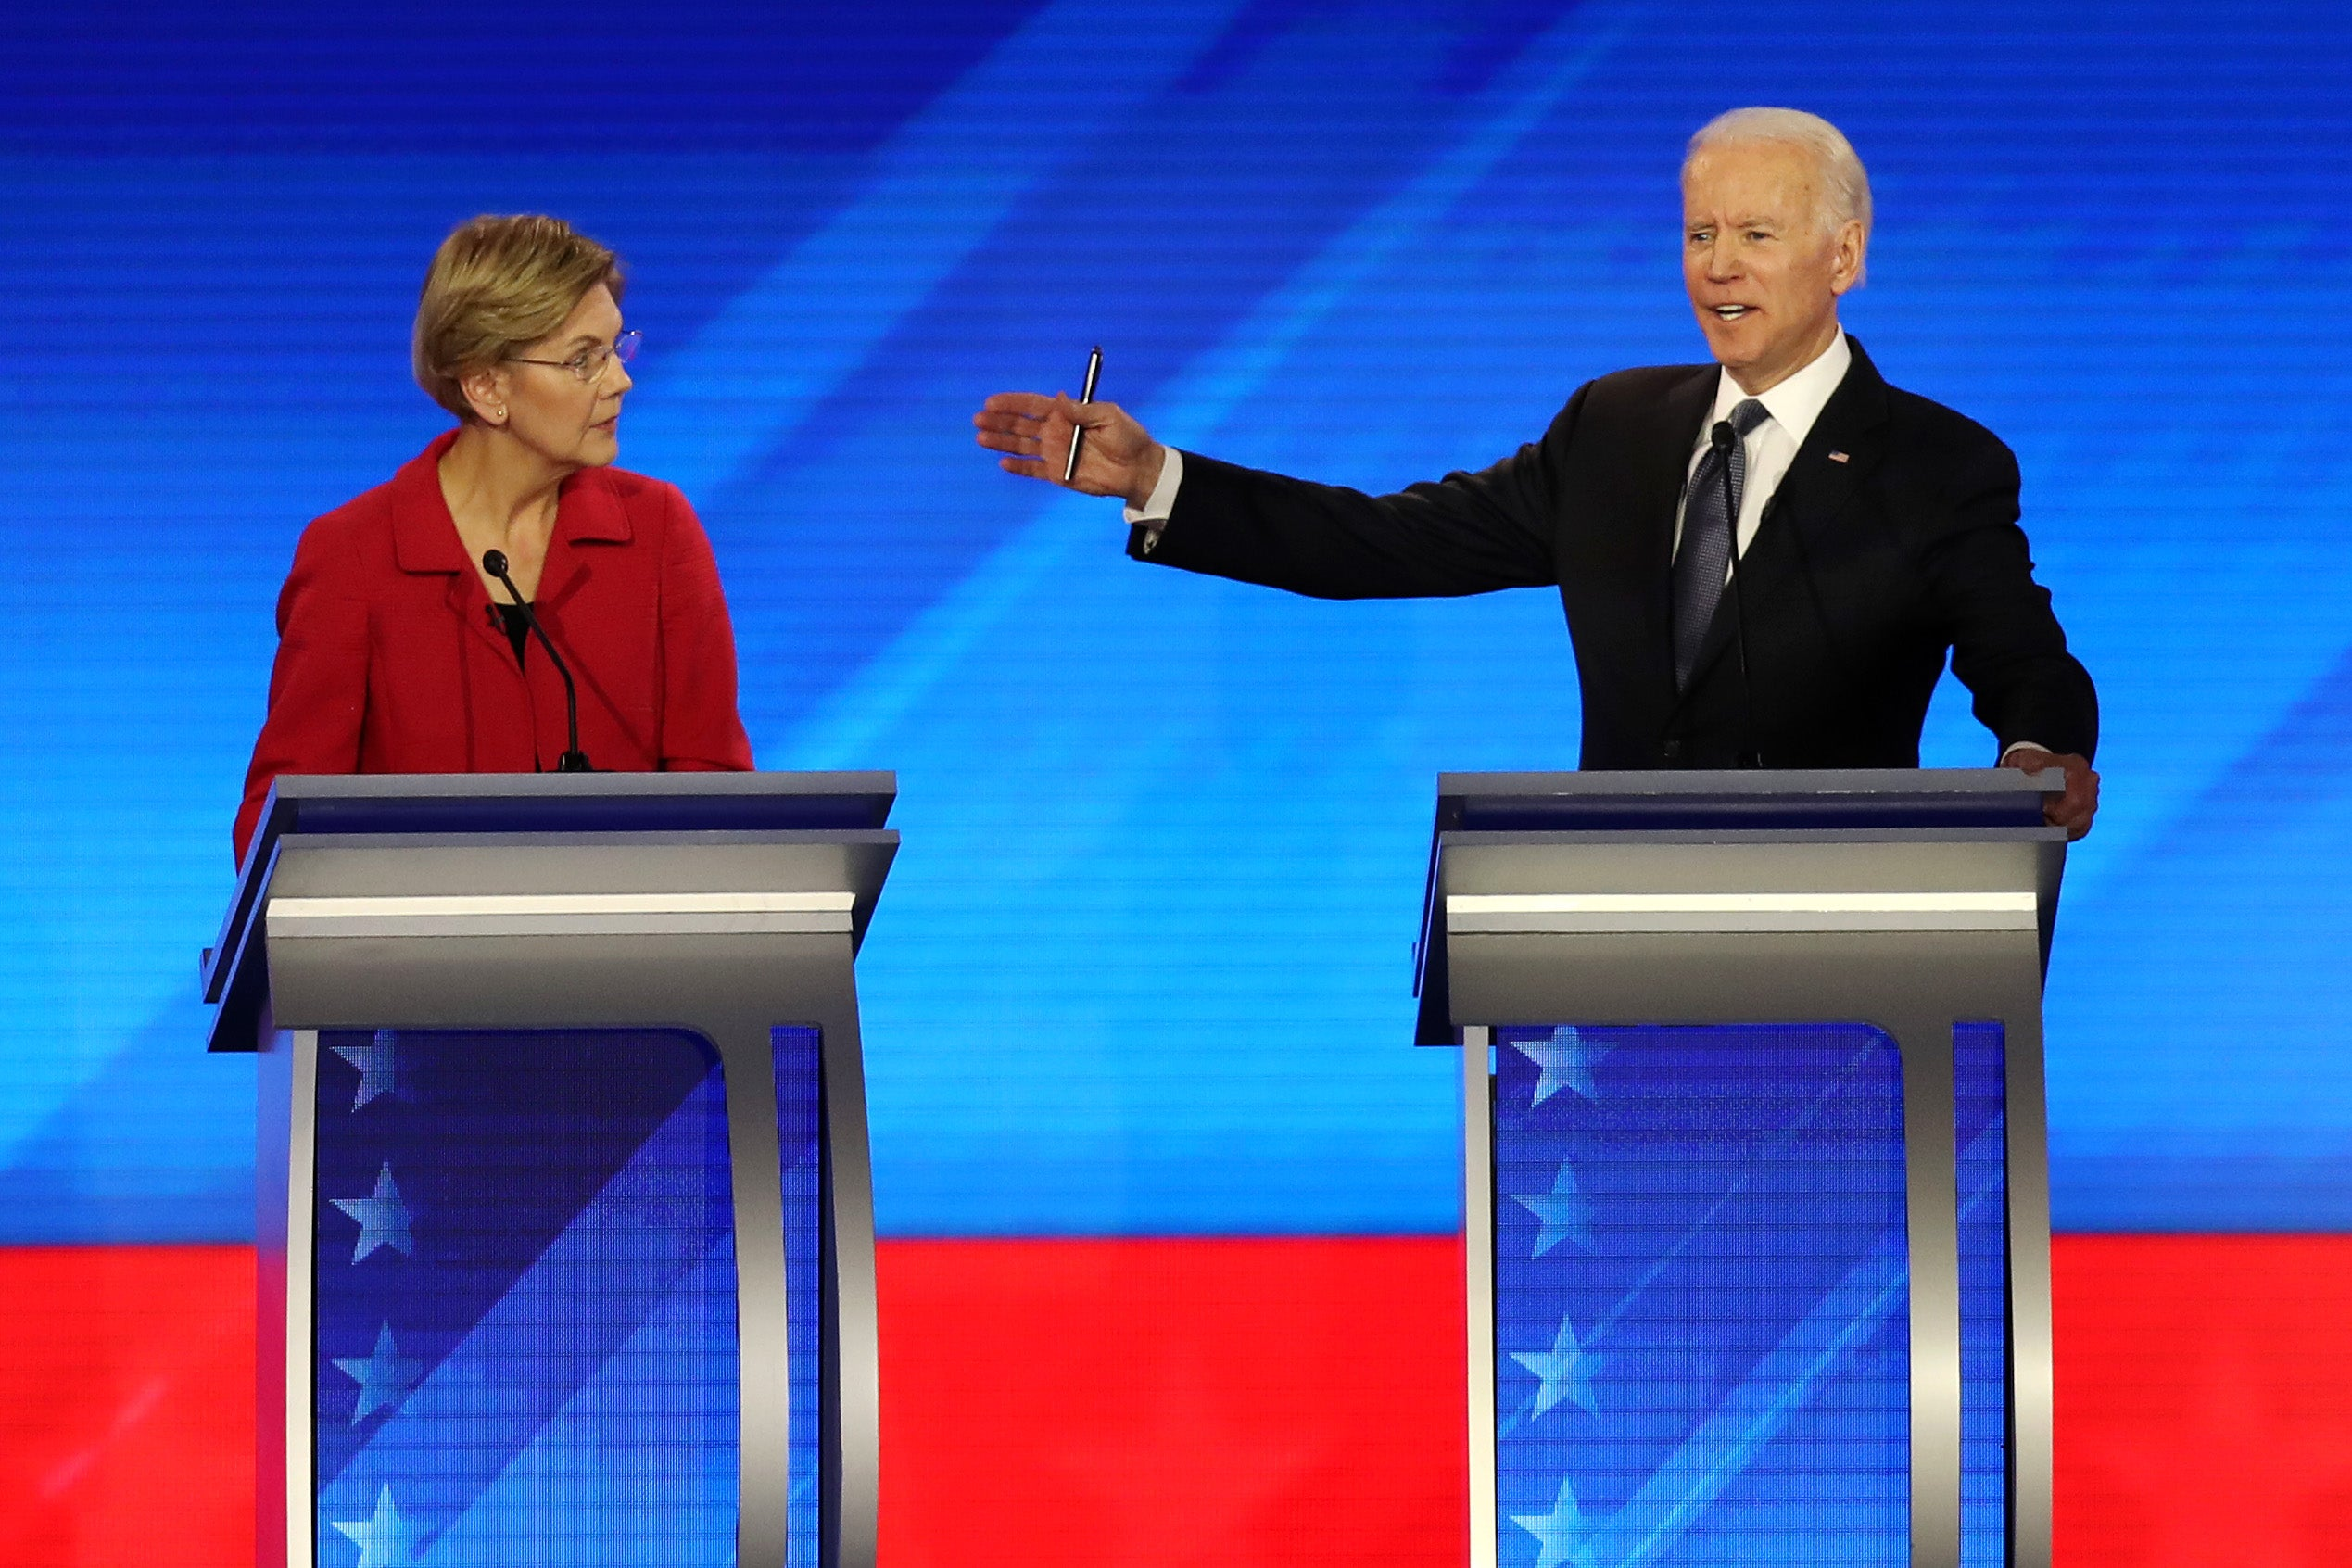 Democratic presidential candidates Sen. Elizabeth Warren (D-MA) and former Vice President Joe Biden participate in the Democratic presidential primary debate in the Sullivan Arena at St. Anselm College on February 07, 2020 in Manchester, New Hampshire